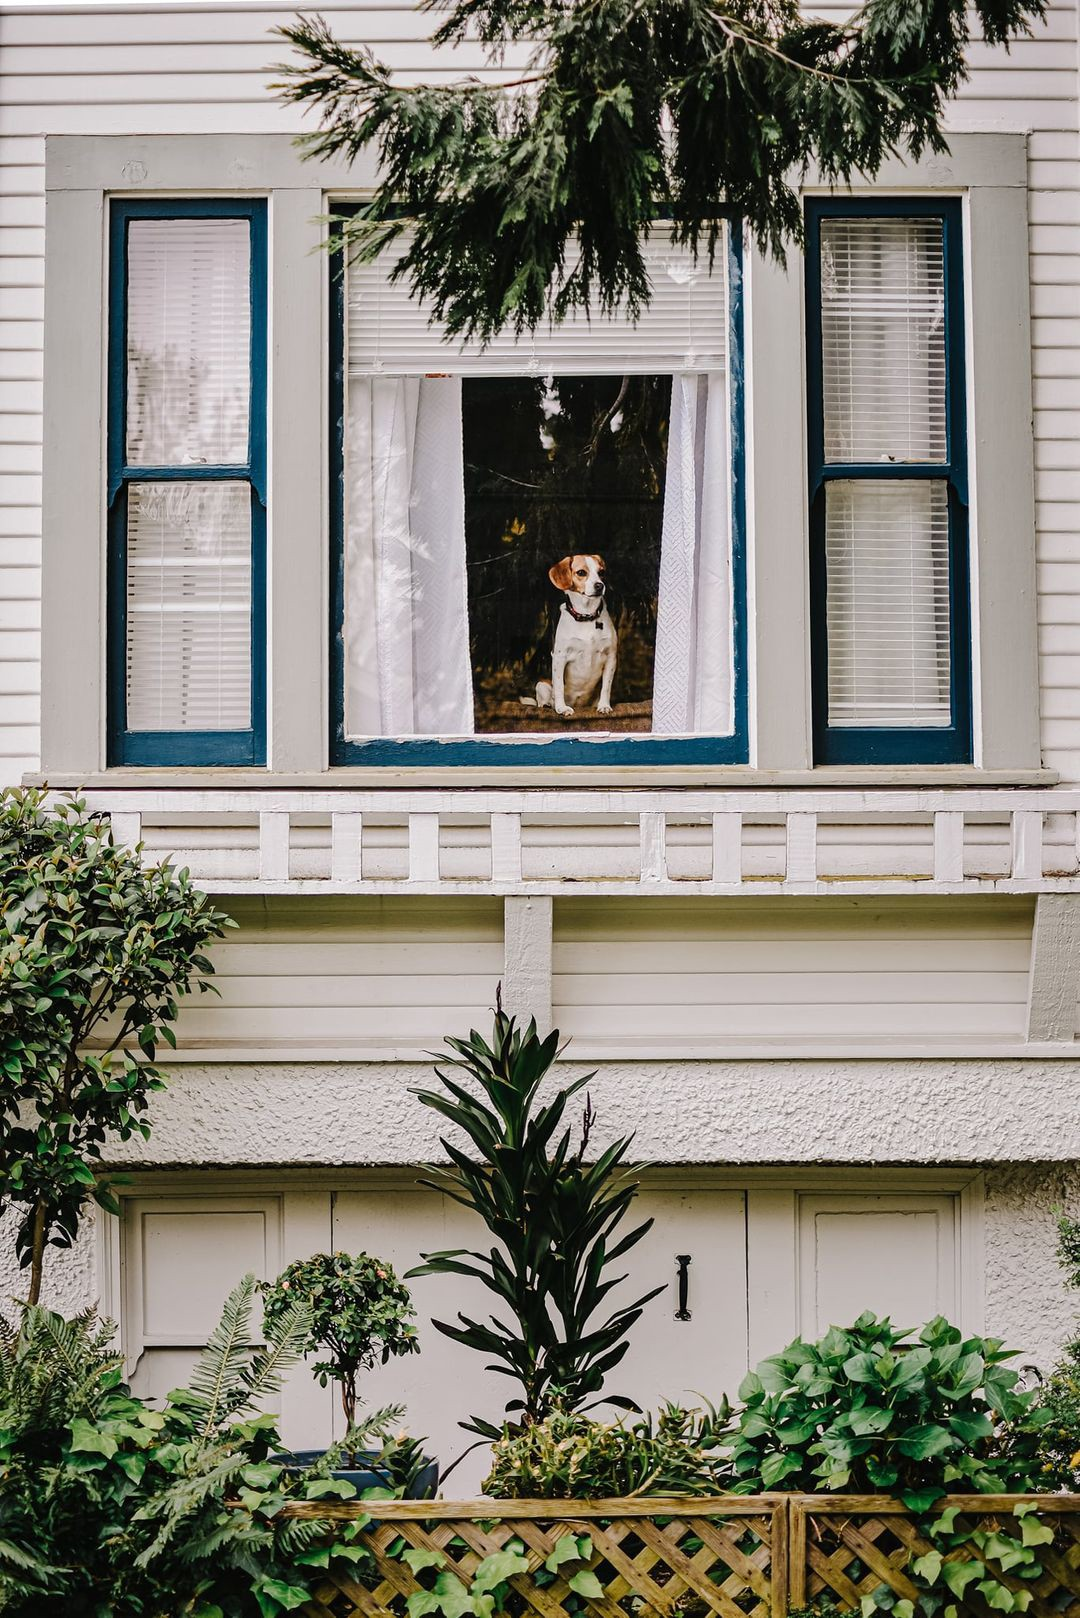 Dog sitting in the window of a white house.